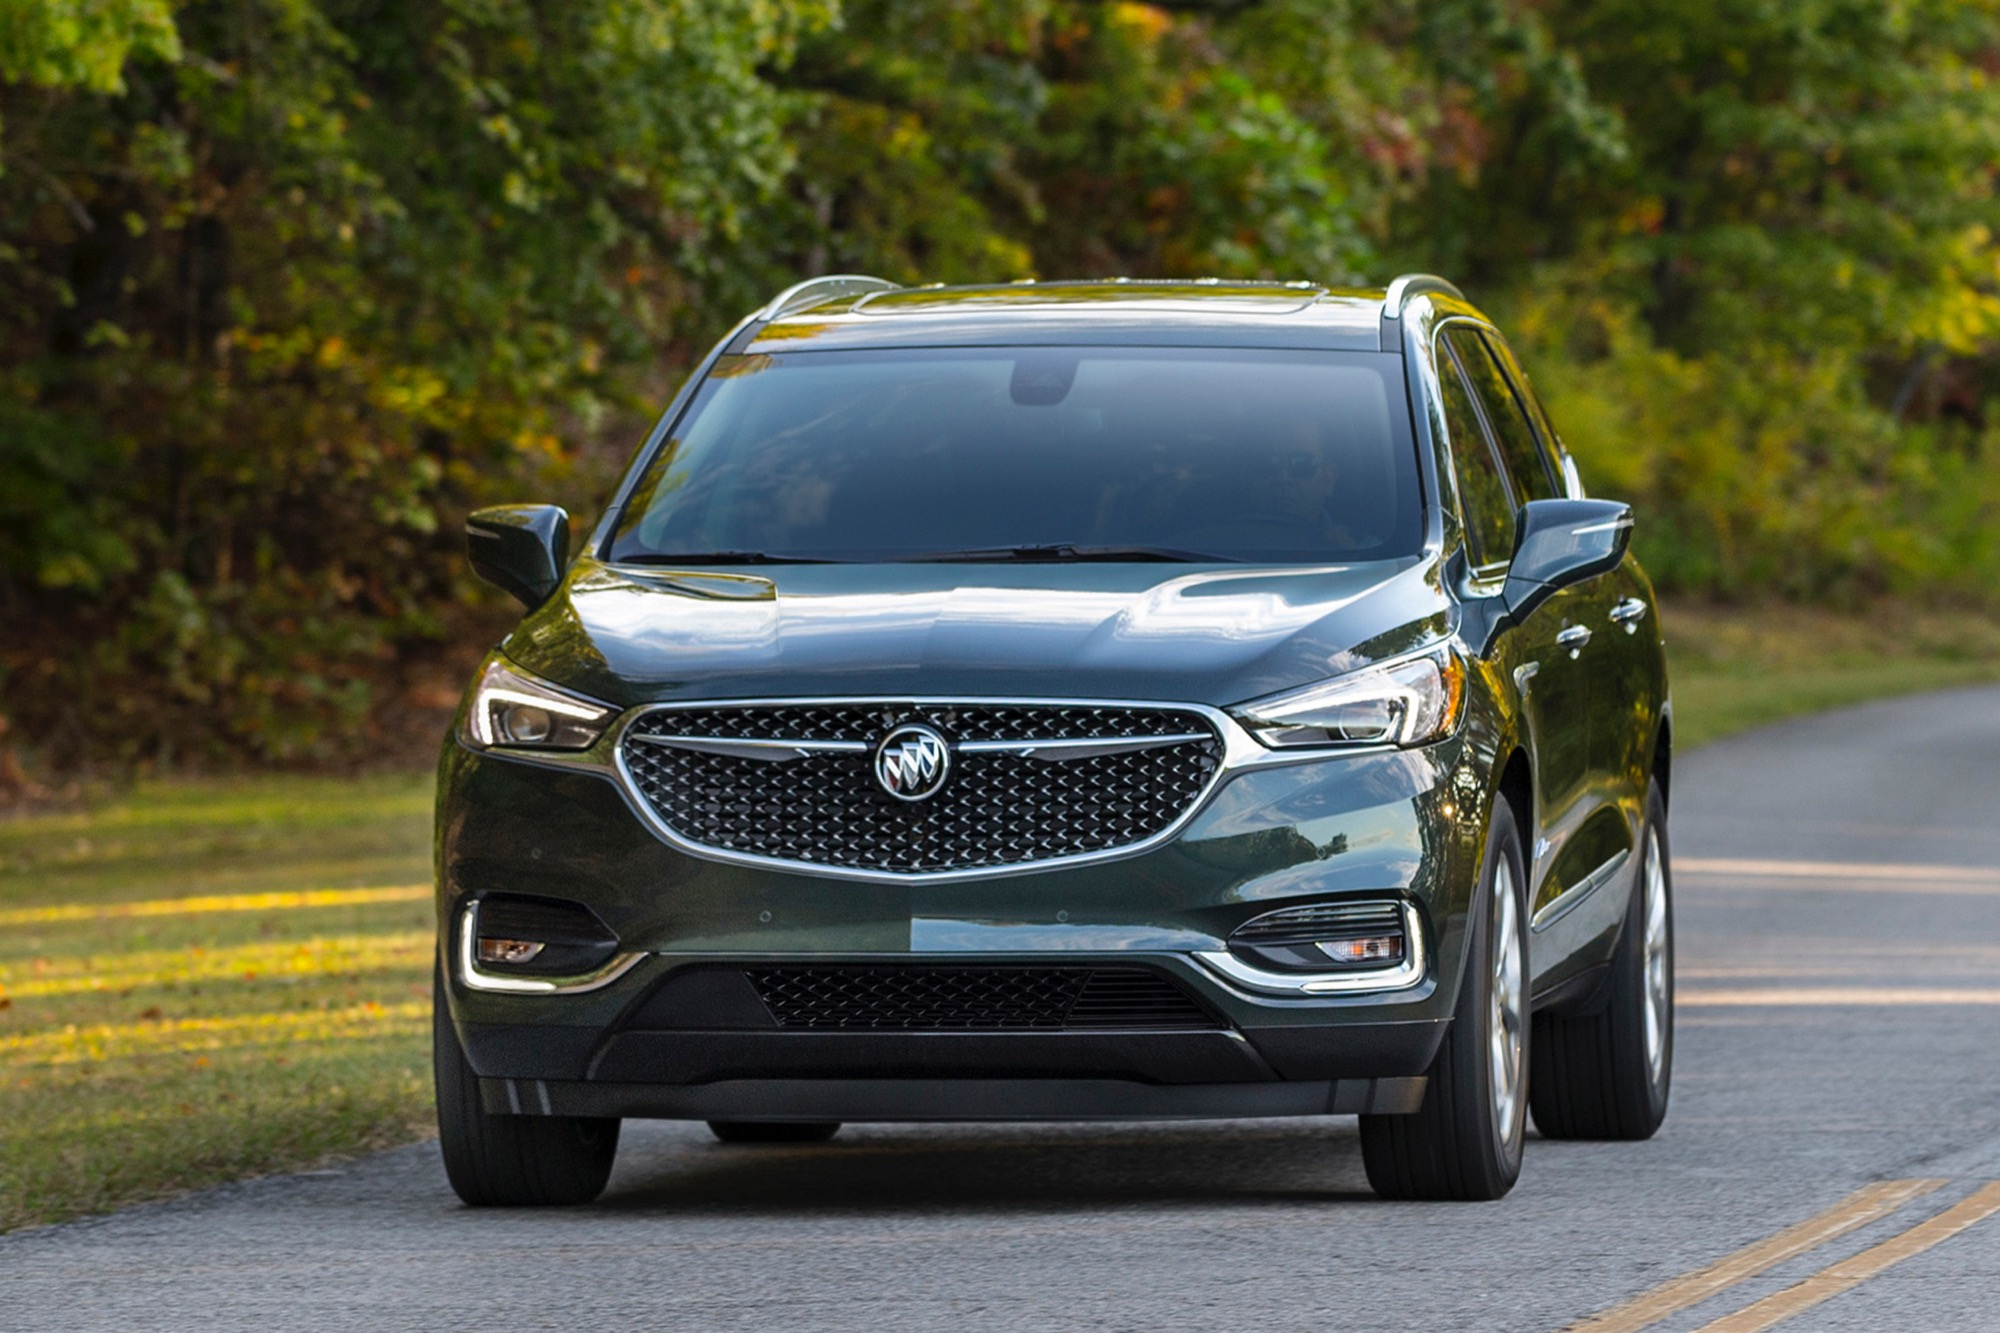 Buyers Don't Care That The Buick Enclave Doesn't Have The 2022 Buick Lucerne Owners Manual, Generations, Upgrades